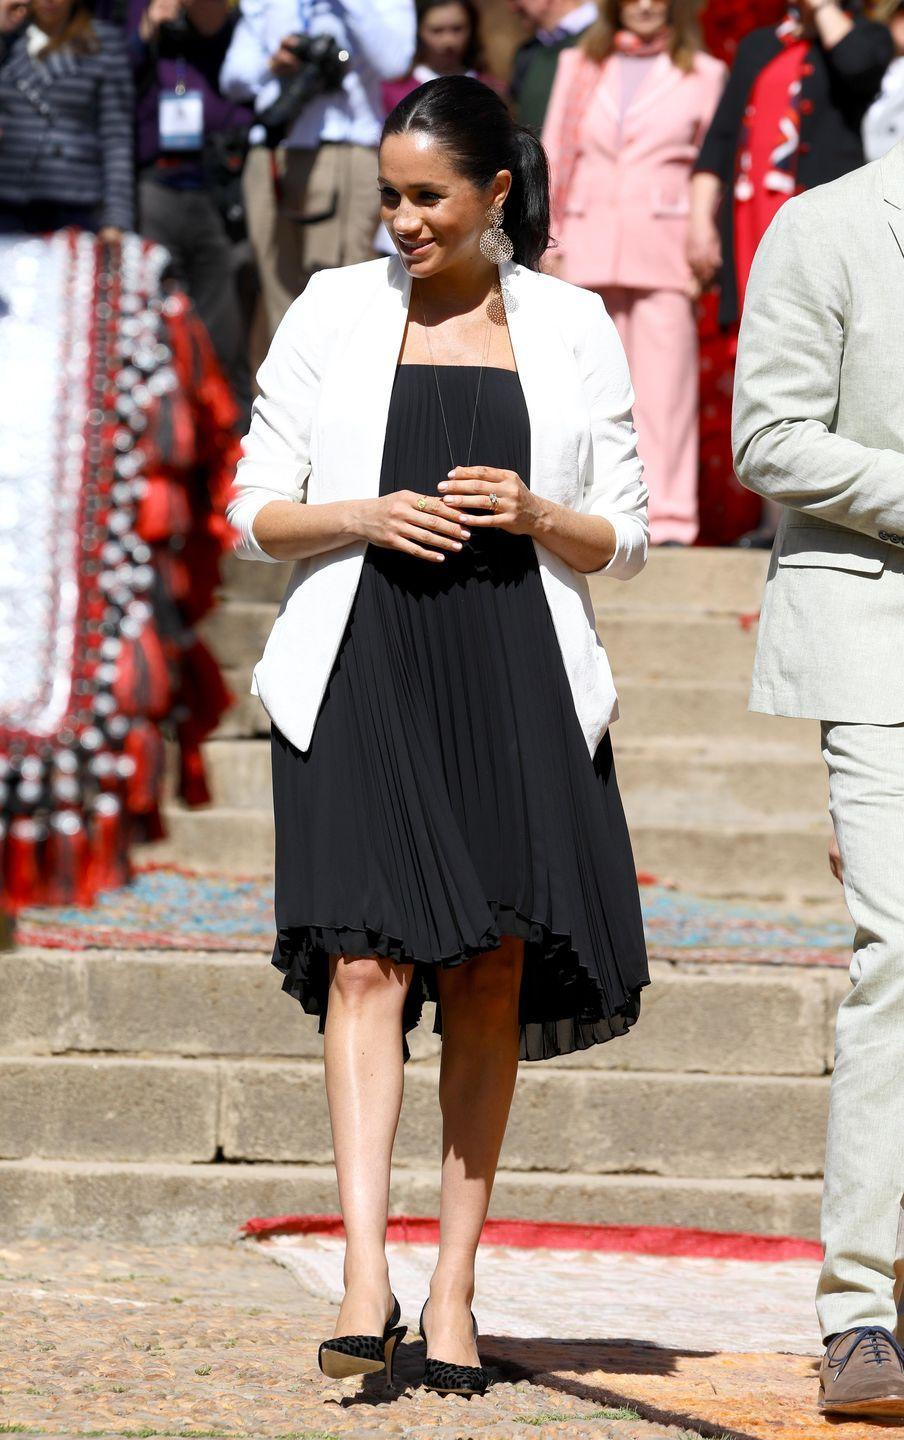 "<p>Meghan looked glamorous for a public walk through of the Andalusian Gardens in Rabat wearing a black pleated dress, white blazer from Aritzia, large <a href=""https://www.neimanmarcus.com/p/gas-bijoux-onde-drop-earrings-prod220120063"" rel=""nofollow noopener"" target=""_blank"" data-ylk=""slk:gold statement earrings by Gas Bijoux"" class=""link rapid-noclick-resp"">gold statement earrings by Gas Bijoux </a>and black Manolo Blahnik sling back heels. </p><p><a class=""link rapid-noclick-resp"" href=""https://go.redirectingat.com?id=74968X1596630&url=https%3A%2F%2Fwww.saksfifthavenue.com%2Fmanolo-blahnik-carolyne-suede-slingbacks%2Fproduct%2F0400088941109&sref=https%3A%2F%2Fwww.townandcountrymag.com%2Fstyle%2Ffashion-trends%2Fg3272%2Fmeghan-markle-preppy-style%2F"" rel=""nofollow noopener"" target=""_blank"" data-ylk=""slk:Shop Now"">Shop Now</a> <em>Carolyne Suede Slingbacks, Manolo Blahnik, $645</em></p><p><a class=""link rapid-noclick-resp"" href=""https://www.neimanmarcus.com/p/gas-bijoux-onde-drop-earrings-prod220120063"" rel=""nofollow noopener"" target=""_blank"" data-ylk=""slk:Shop Now"">Shop Now</a> <em>Onde Drop Earrings, Gas Bijoux, $200</em></p>"